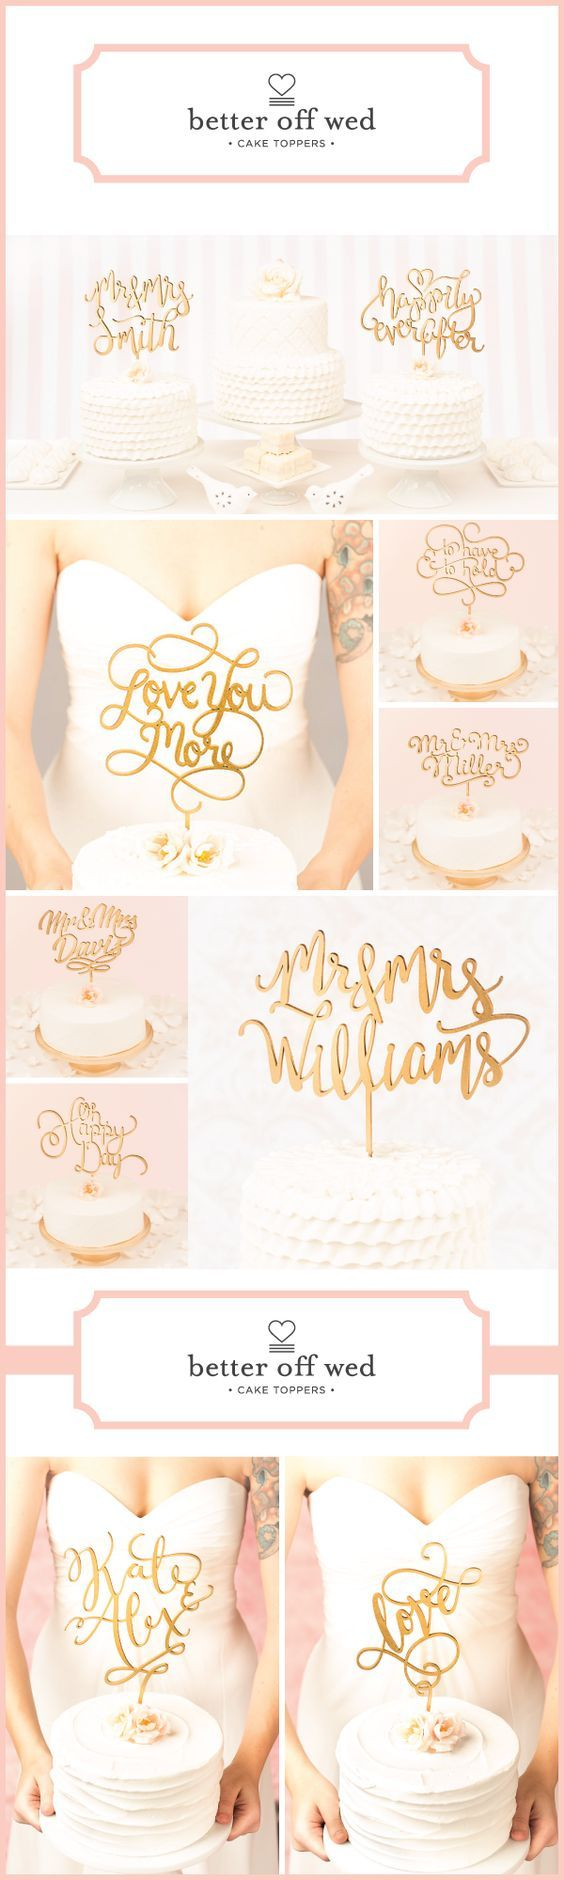 Over a hundred hand lettered, handmade cake toppers you won't find anywhere else. Find your perfect one at www.betteroffwed.co